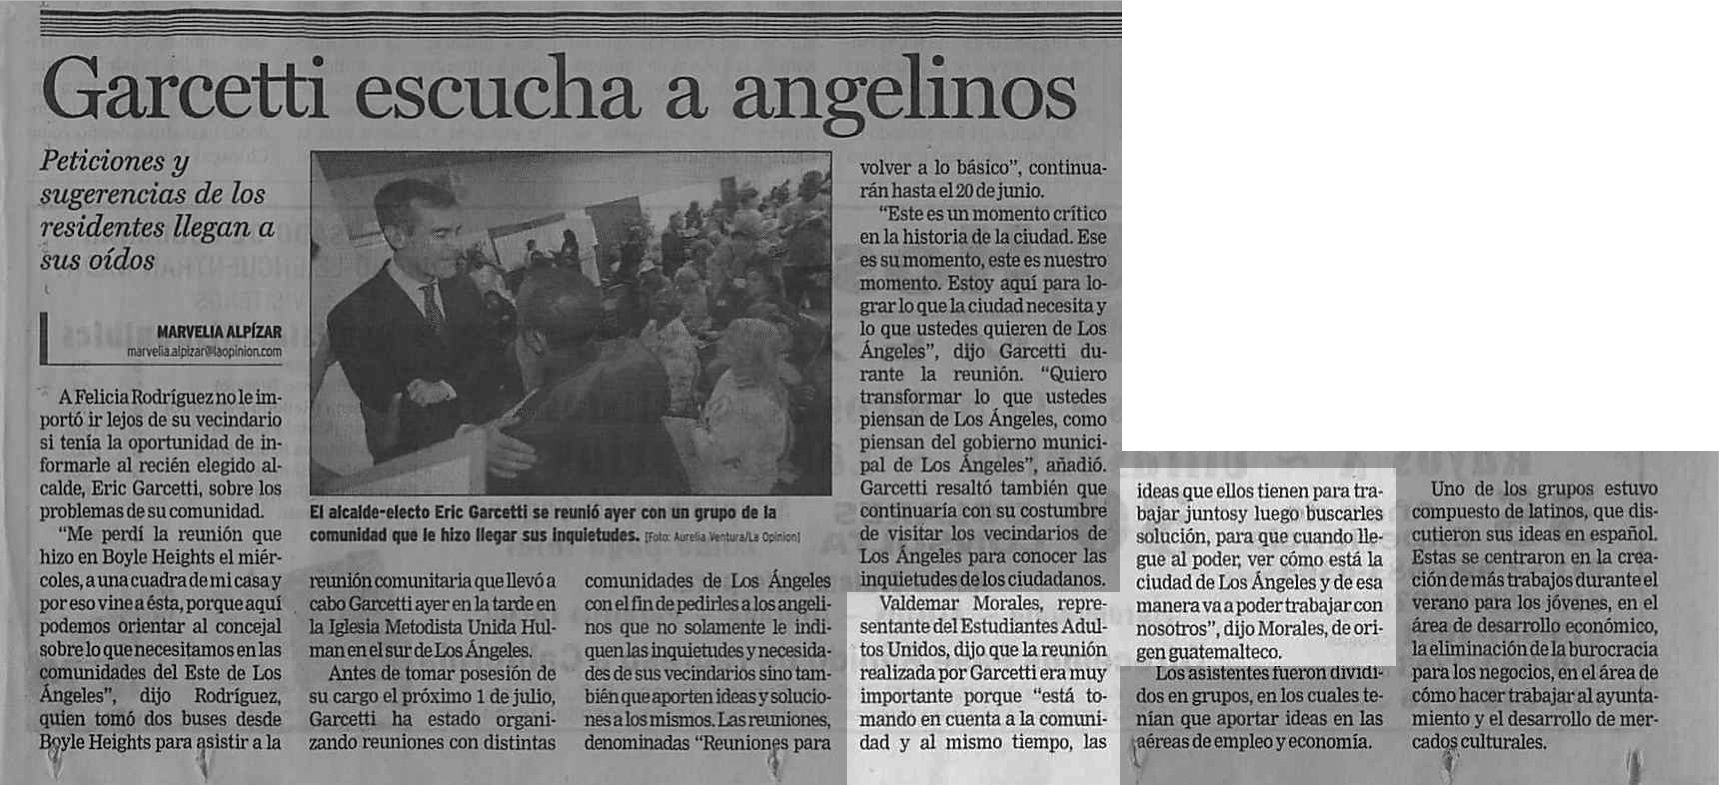 LA_Opinion_6-9-13_UAS_-_Valdemar_Morales_meets_with_Garcetti-v3-UPLOAD.jpg